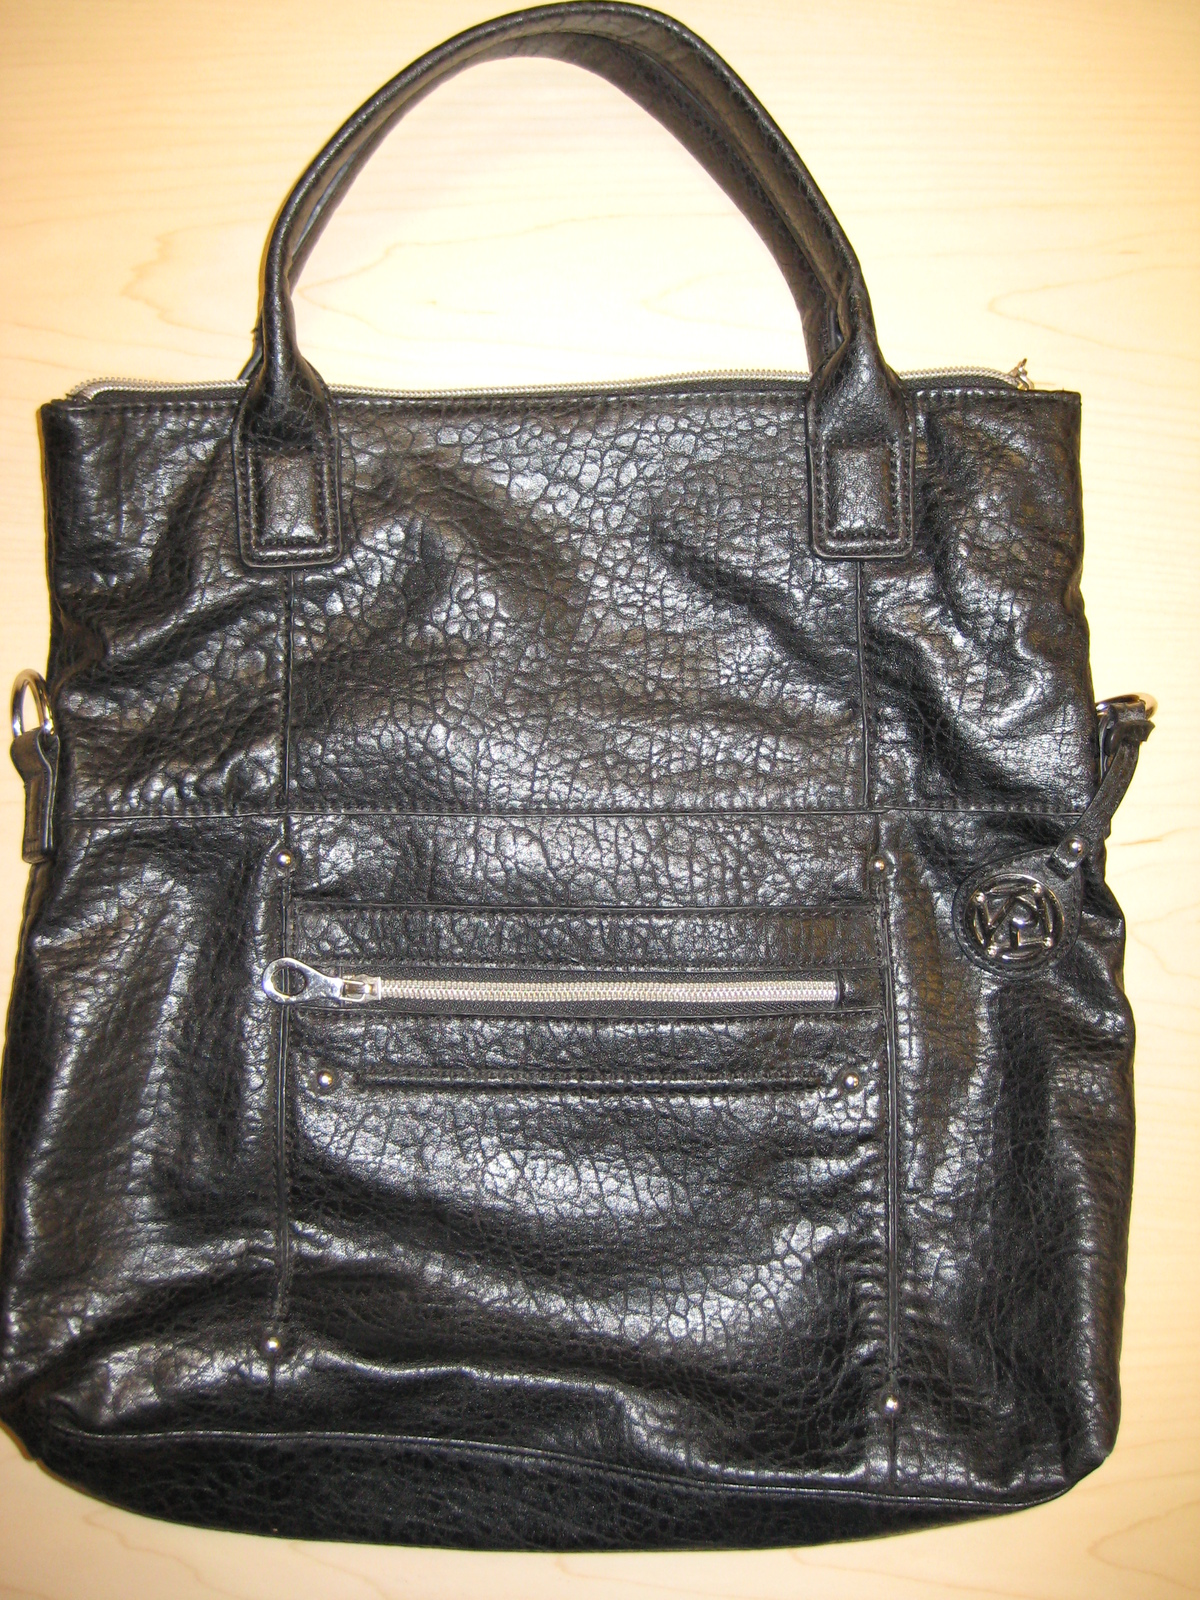 Relic by Fossil Top Handle Leather Bag and 31 similar items. 430 bd91f4ebcf212